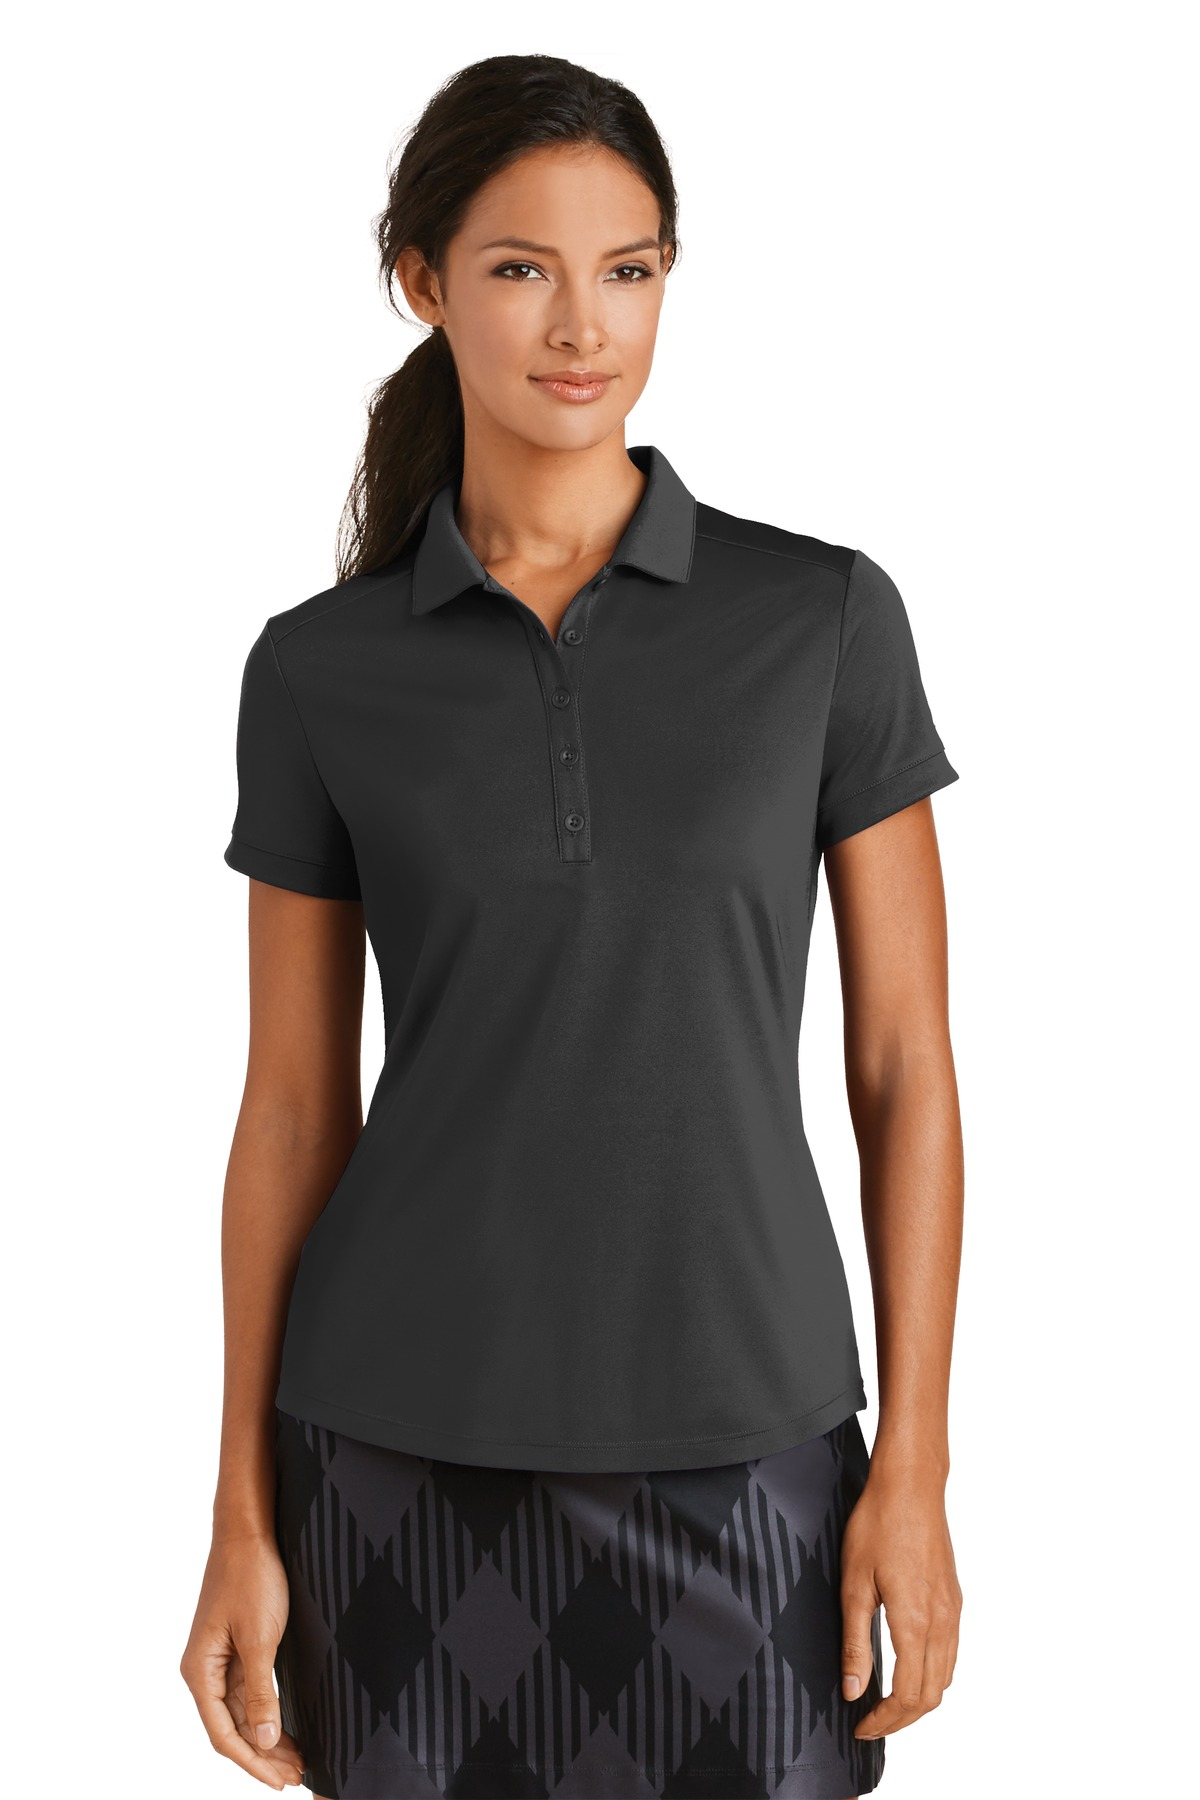 6d76333d Buy Nike Ladies Dri-FIT Players Modern Fit Polo. - Nike Online at ...